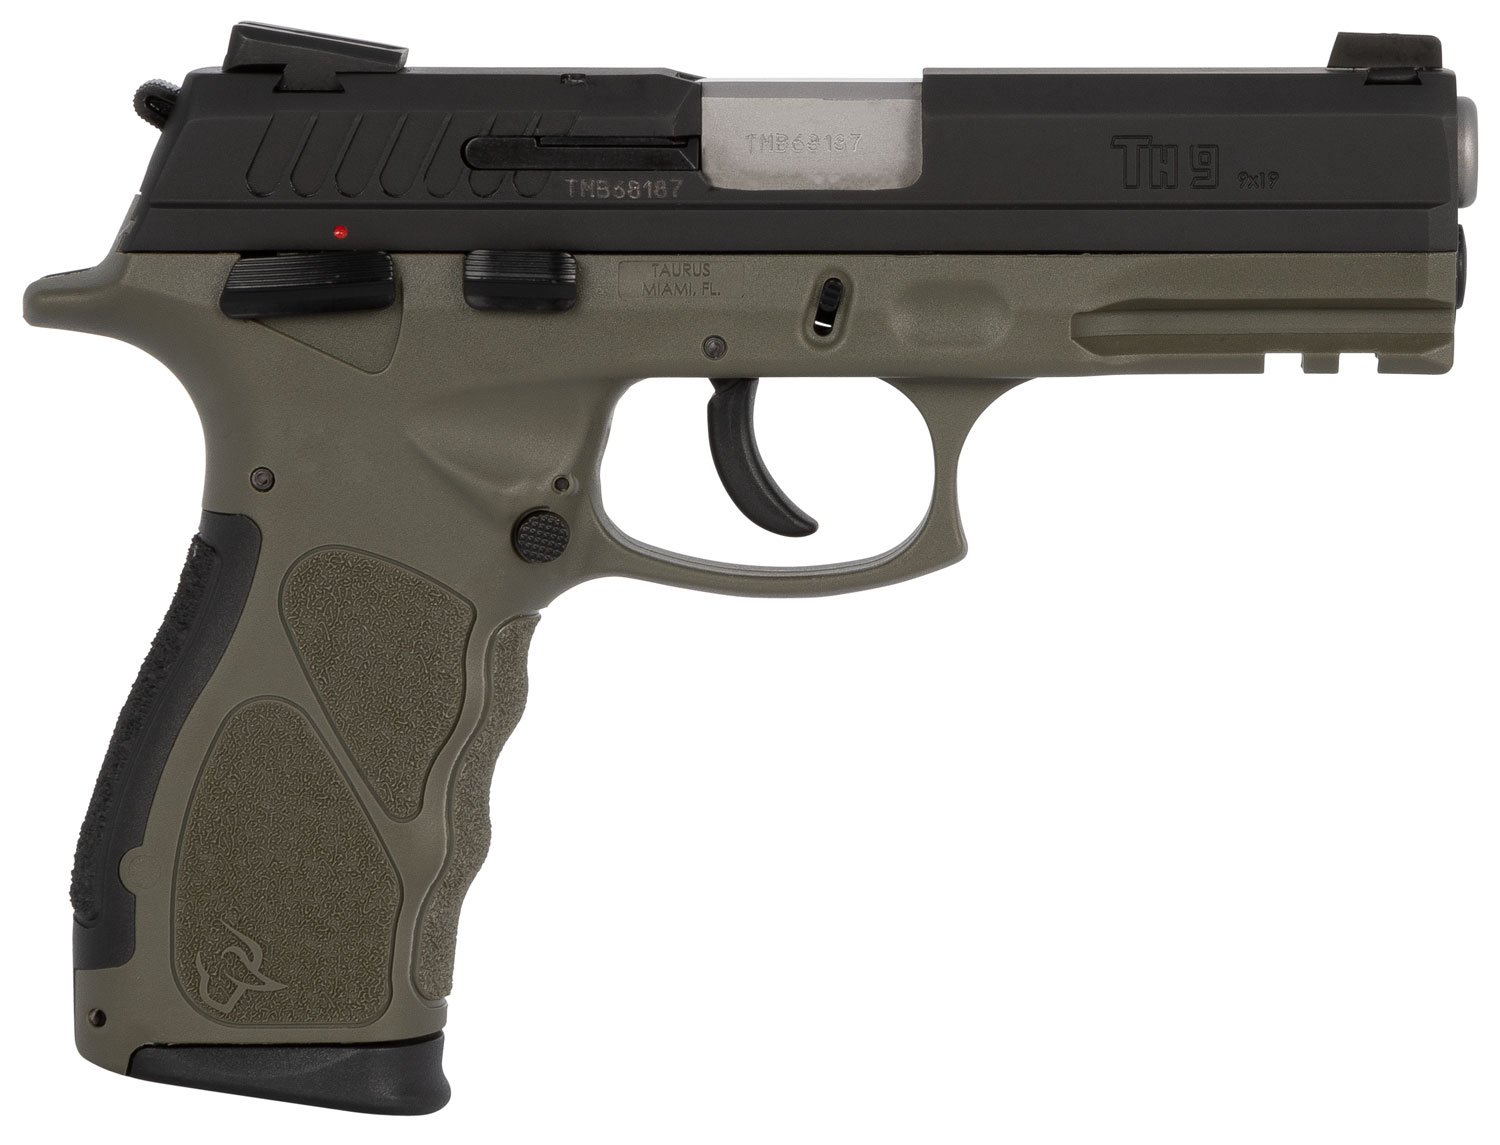 TH9 COMPACT 9MM BLK/ODG 17+1 - 1-TH9C031O   ADJ SIGHTS 2 MAGS